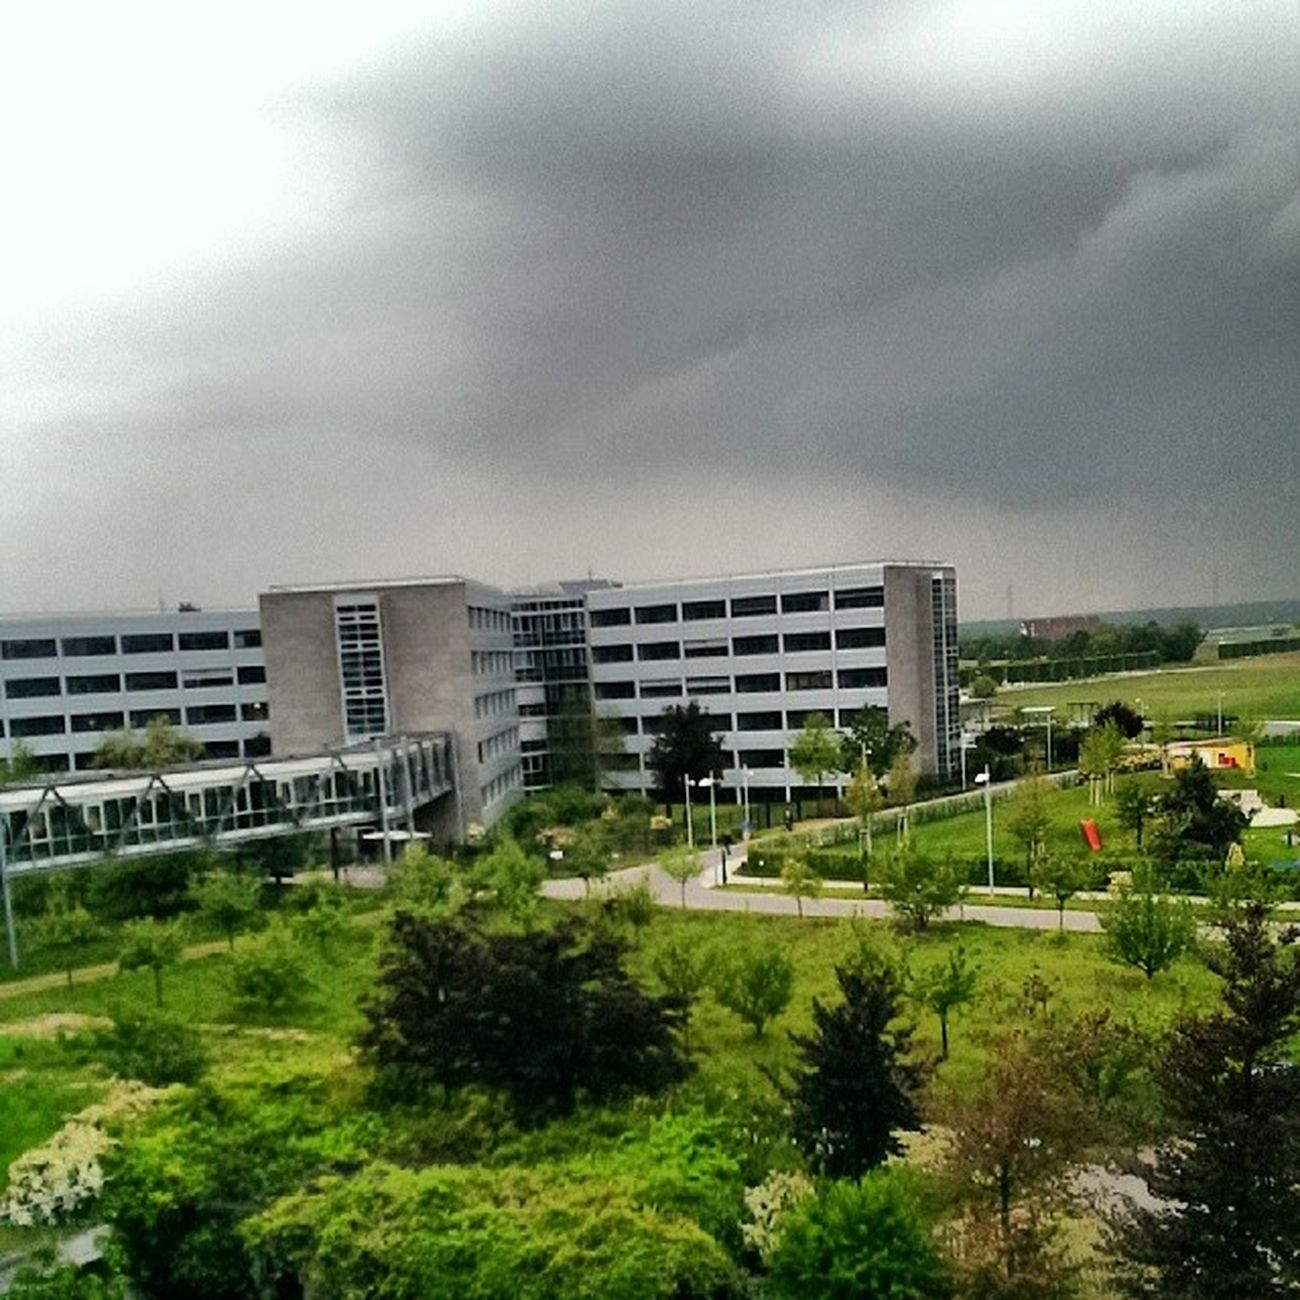 Heavy clouds over Sap HQ in Walldorf today. LifeatSAP